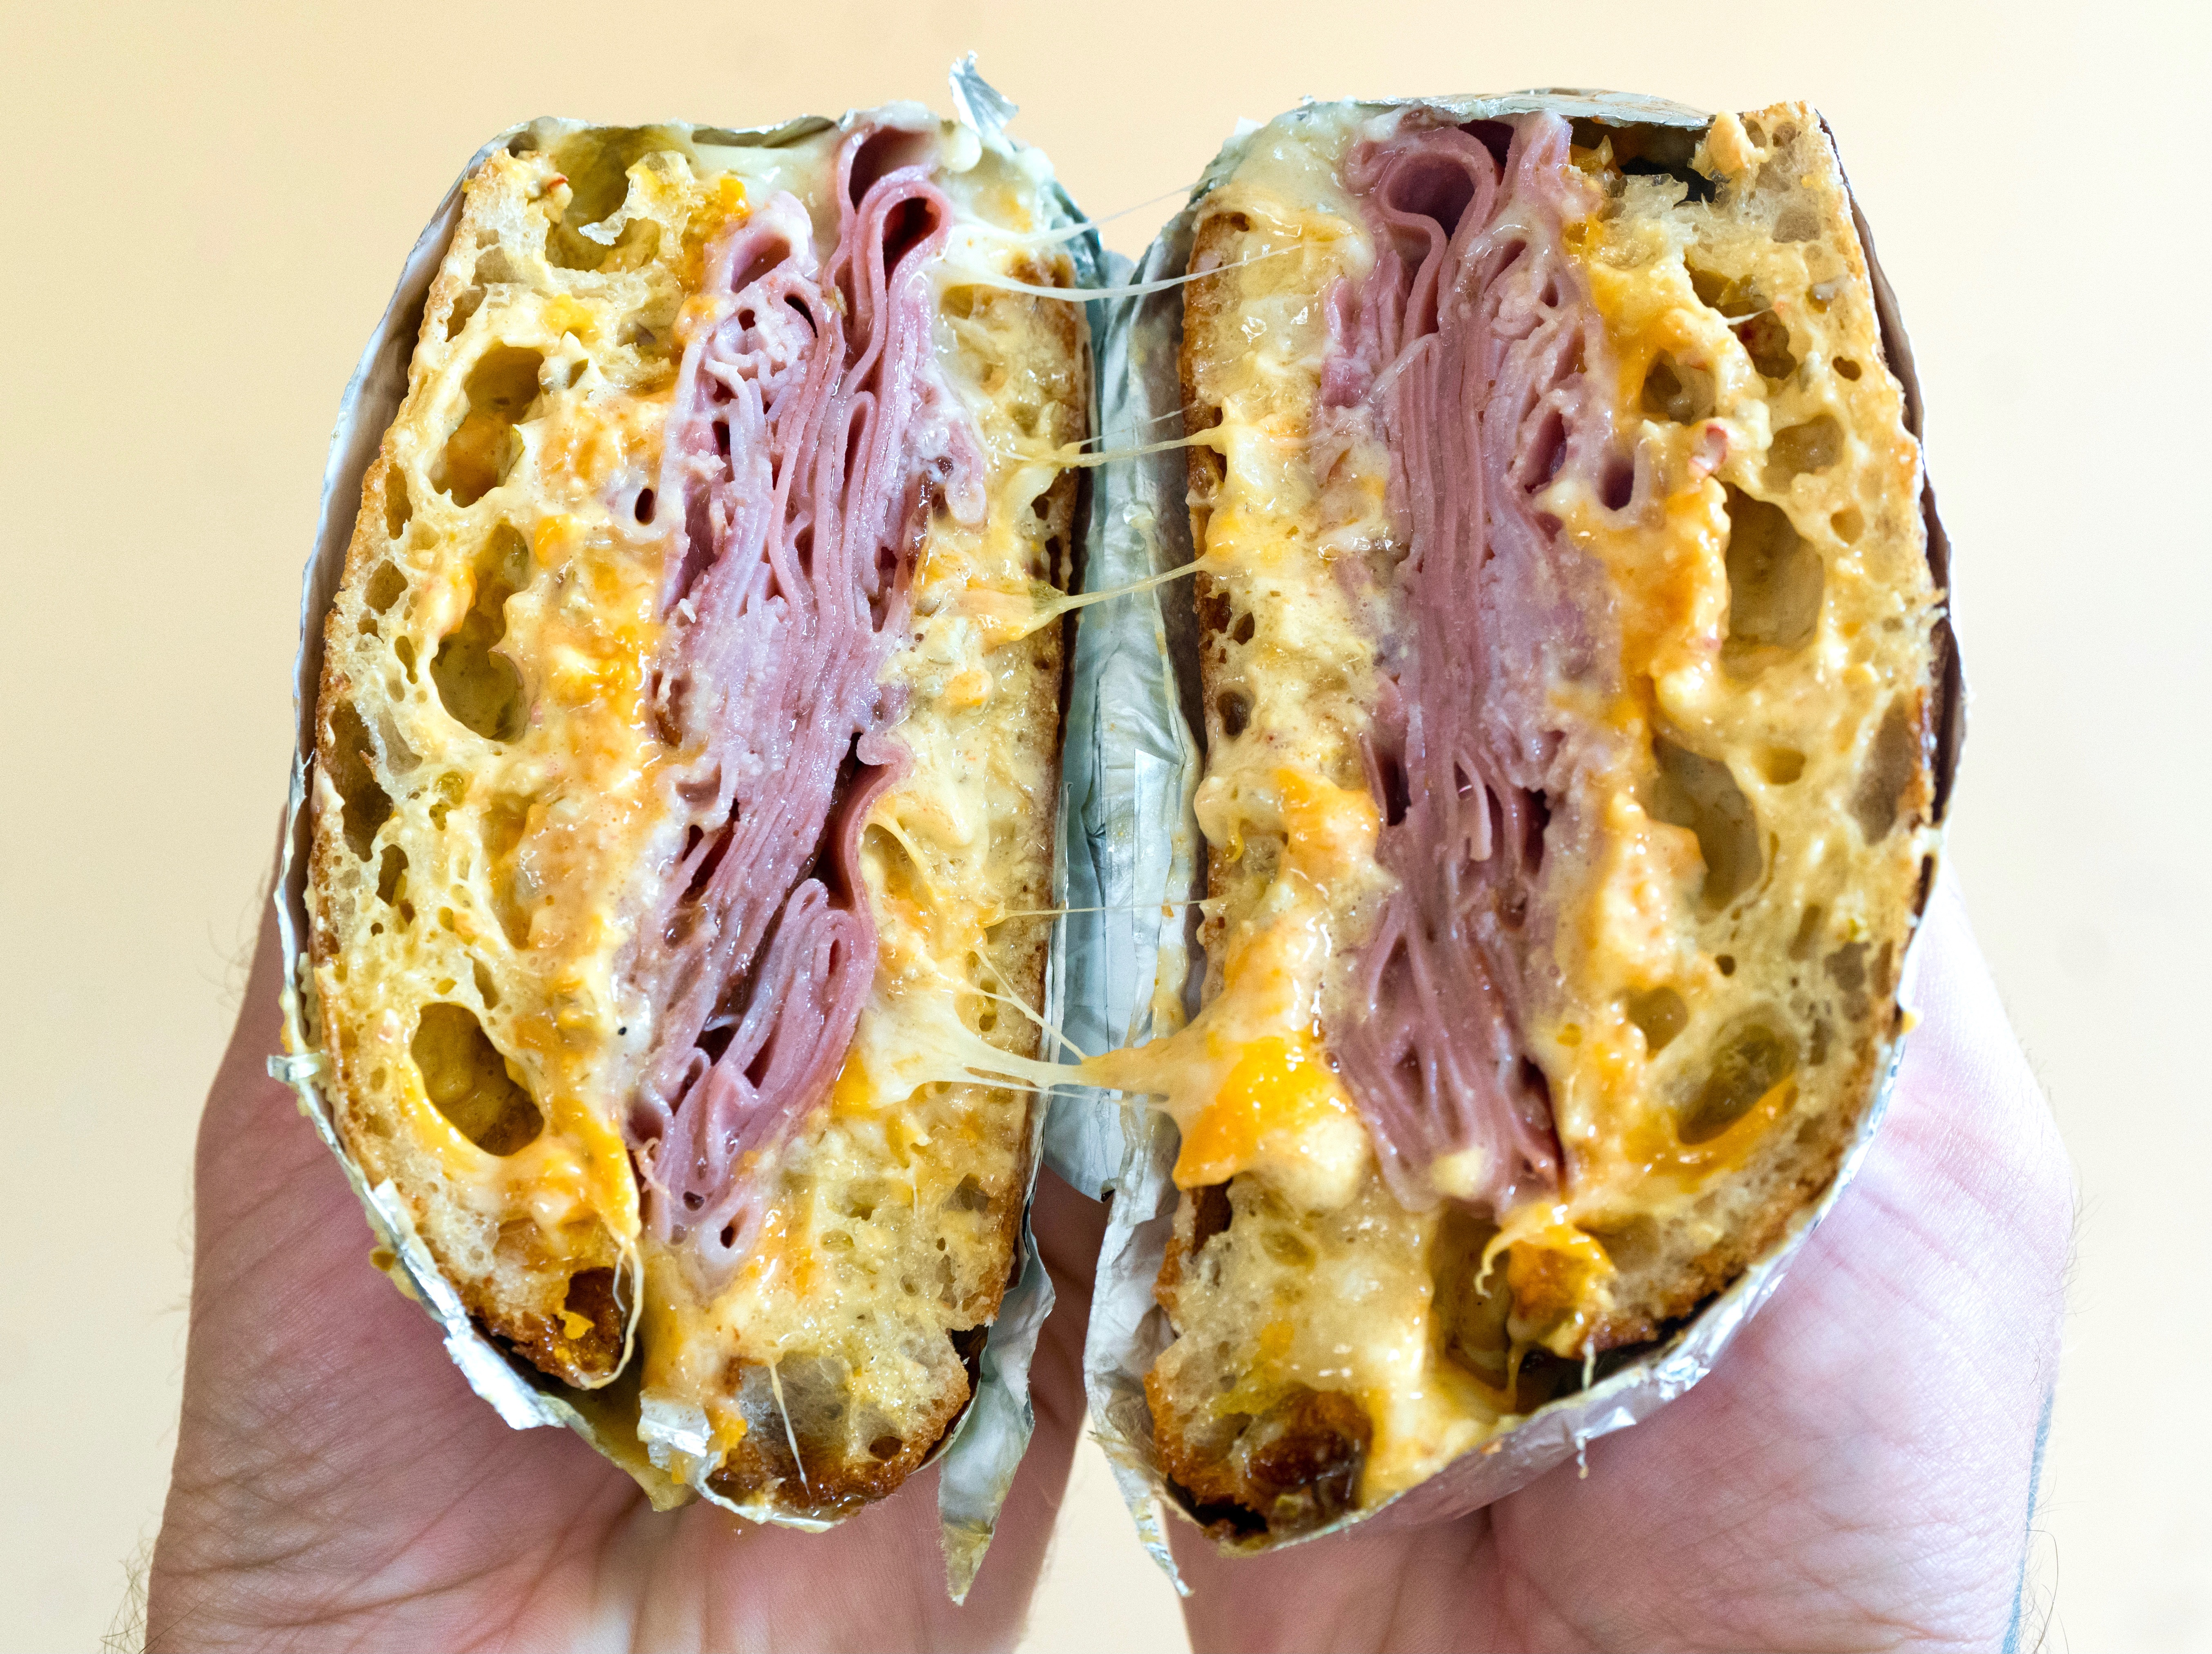 A sandwich that is cut in half with layers of melty cheese and sliced pink meat